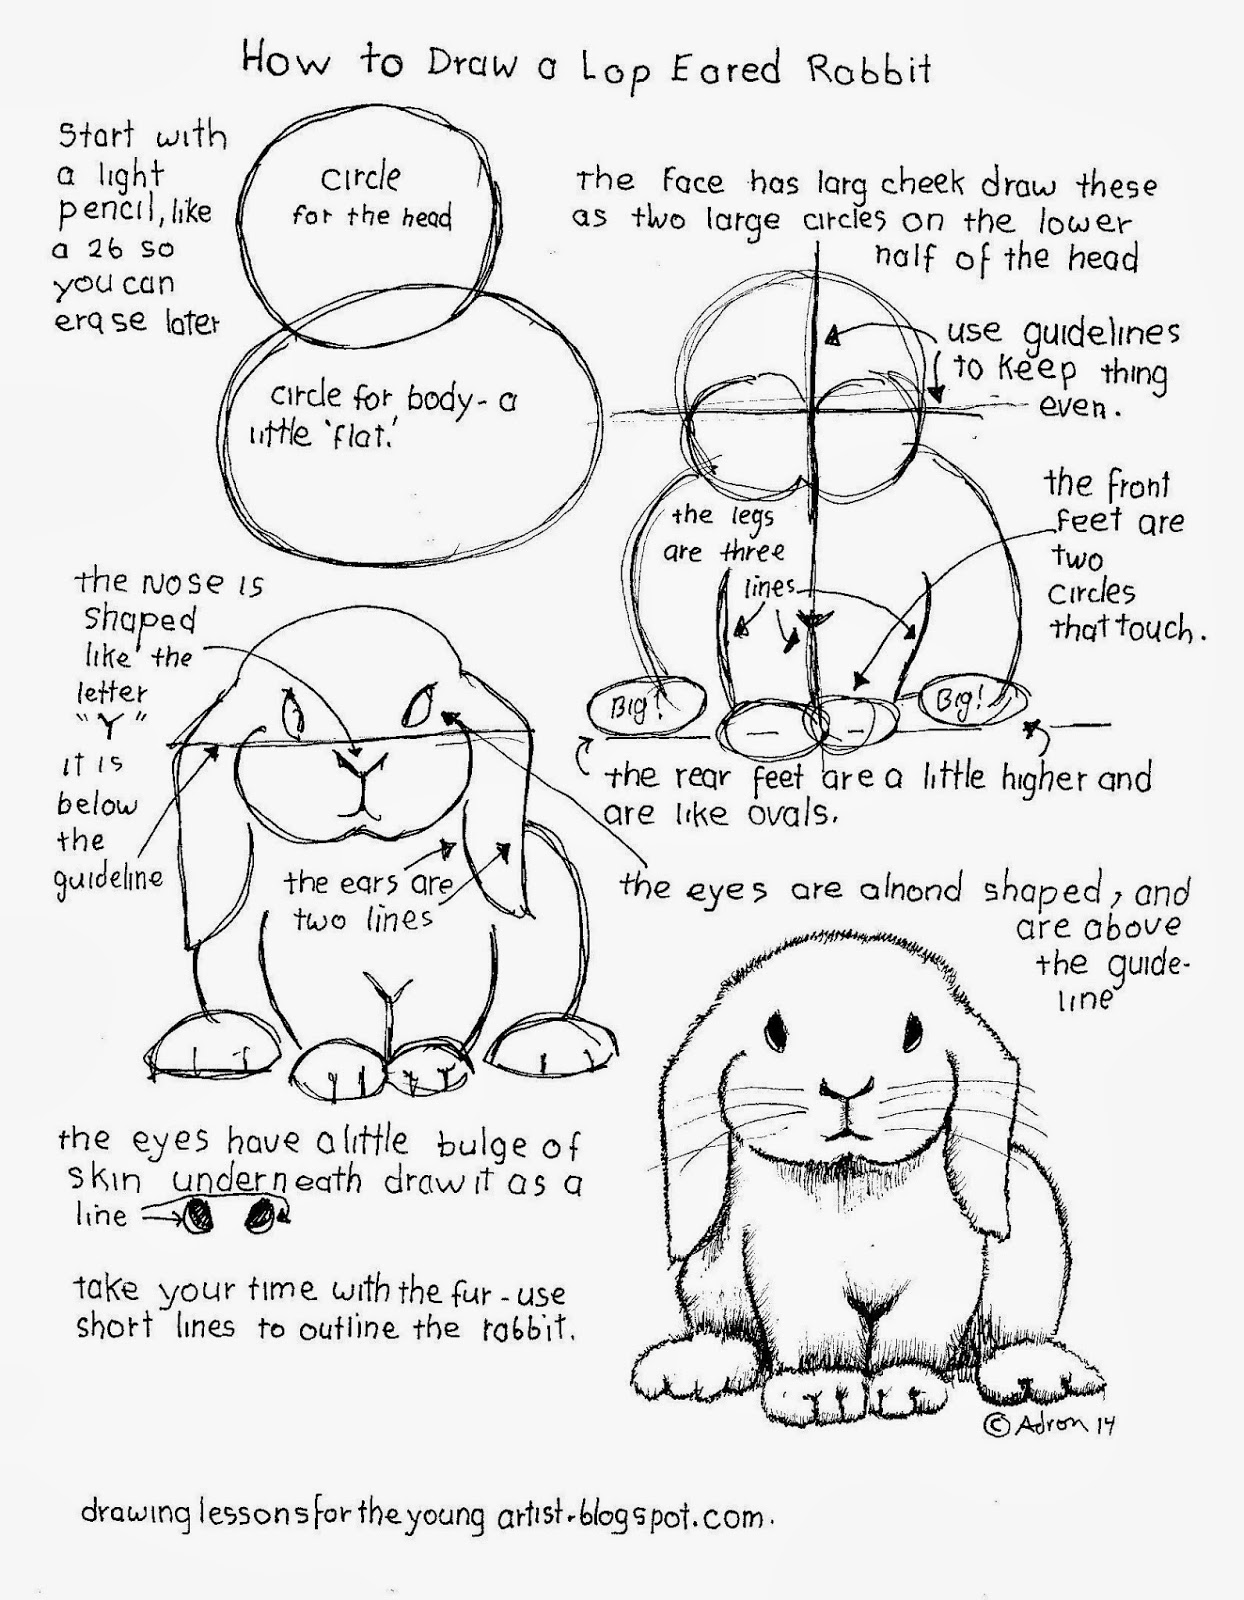 worksheet Drawing Worksheets free drawing worksheets at getdrawings com for personal use 1244x1600 how to draw the young artist a lop